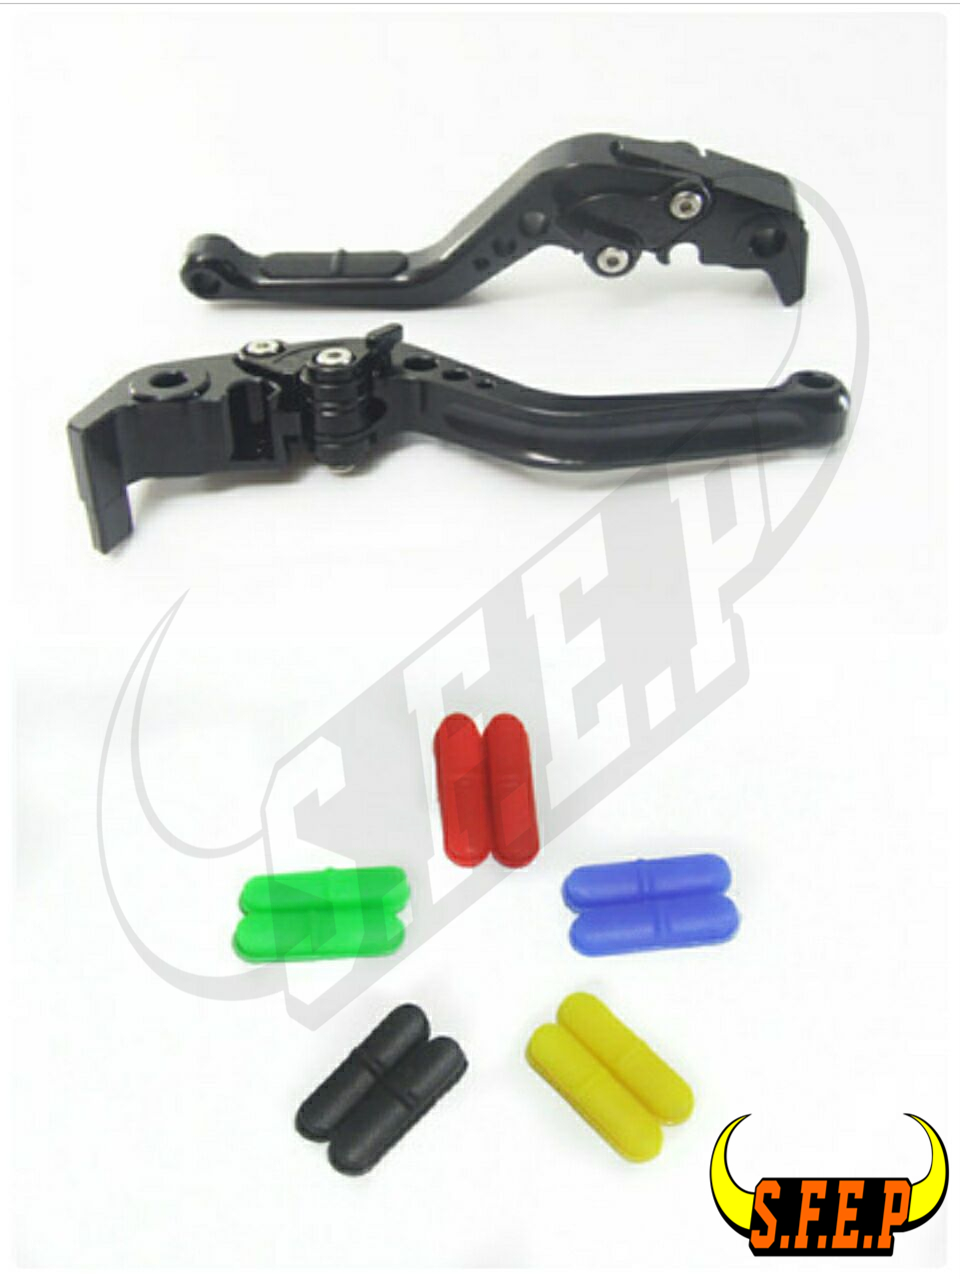 CNC Adjustable Motorcycle Brake and Clutch Levers with Anti-Slip For Ducati MS4/MS4R 2001-2006